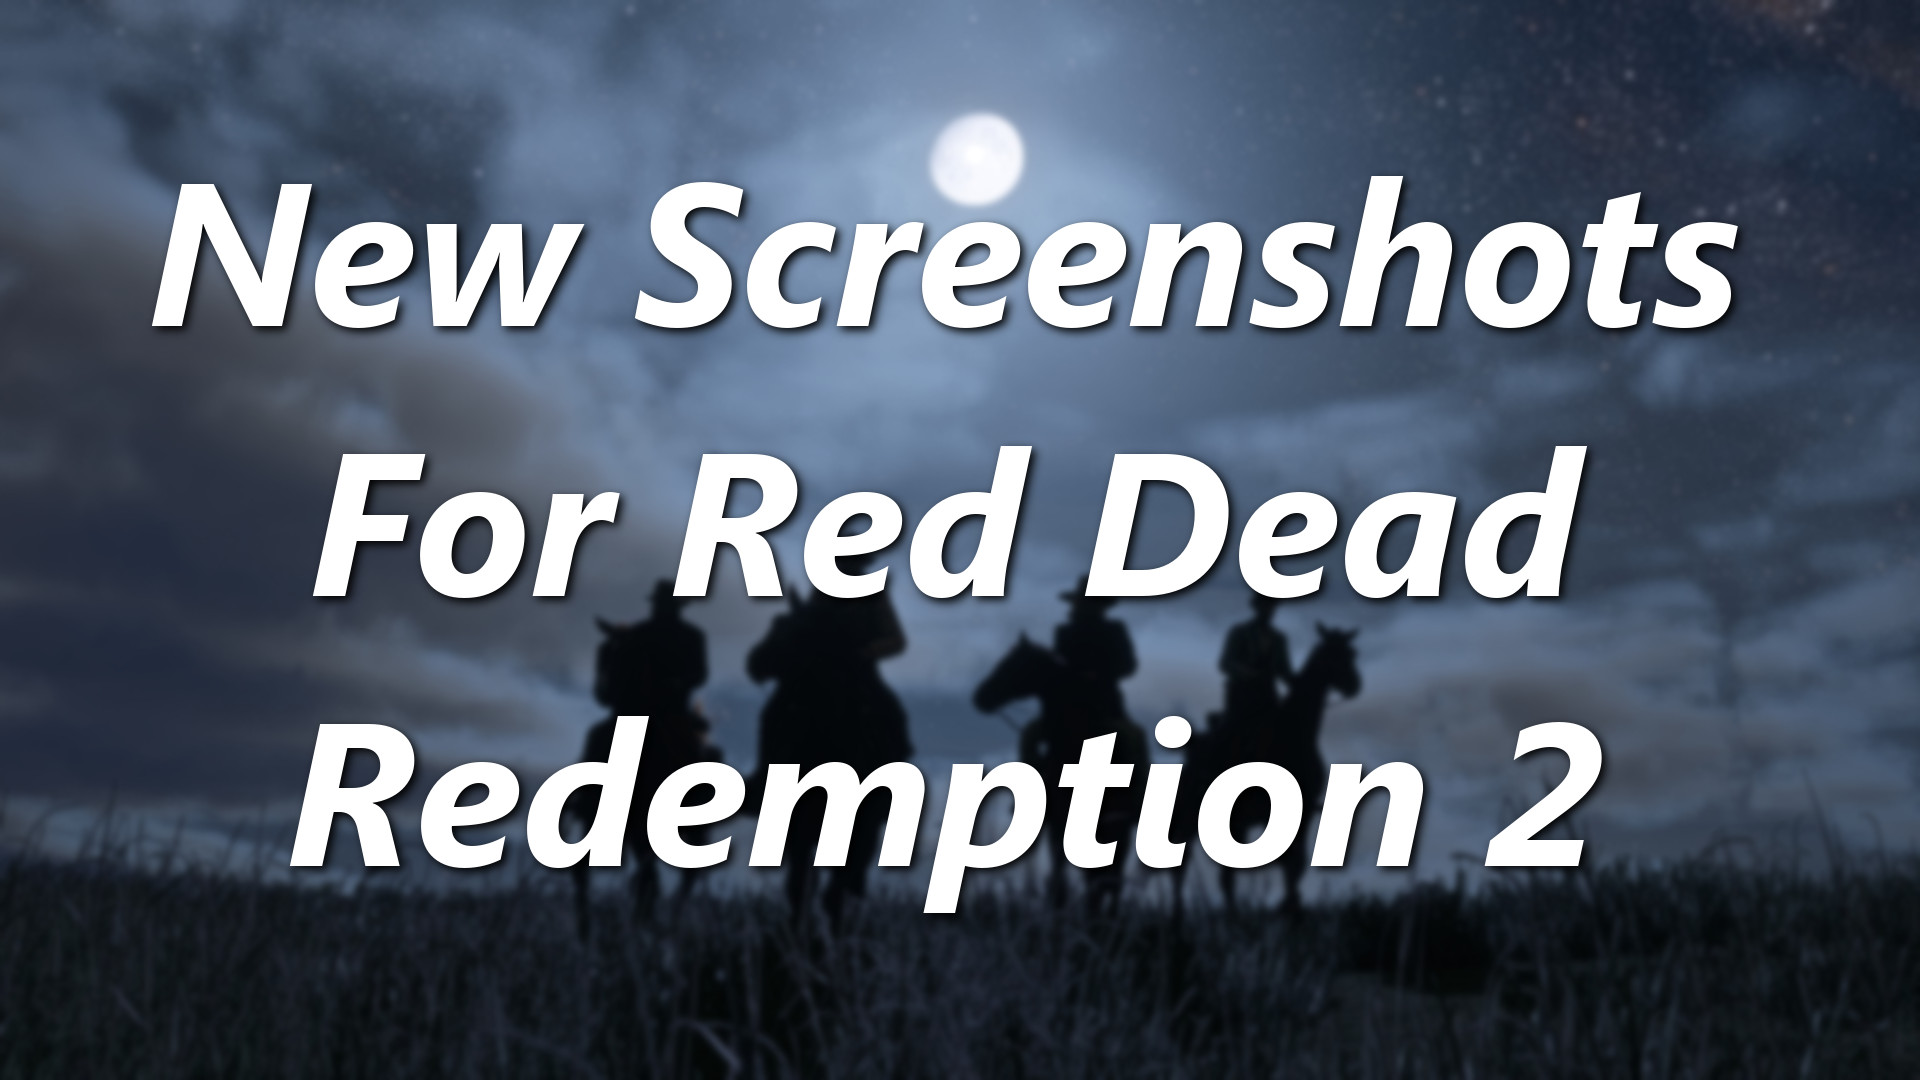 New Screenshots for Red Dead Redemption 2